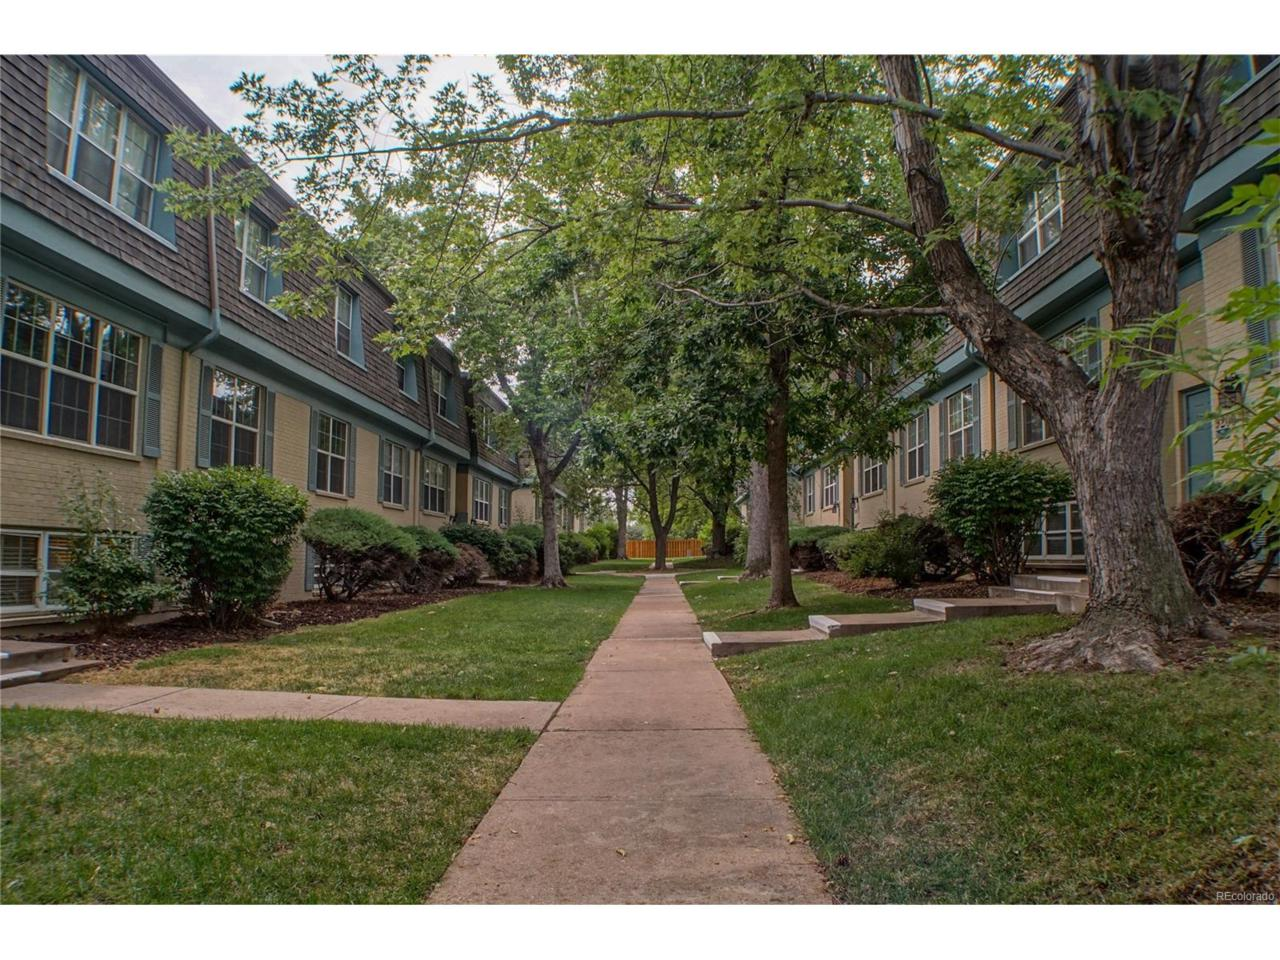 9230 E Girard Avenue #9, Denver, CO 80231 (MLS #2388288) :: 8z Real Estate